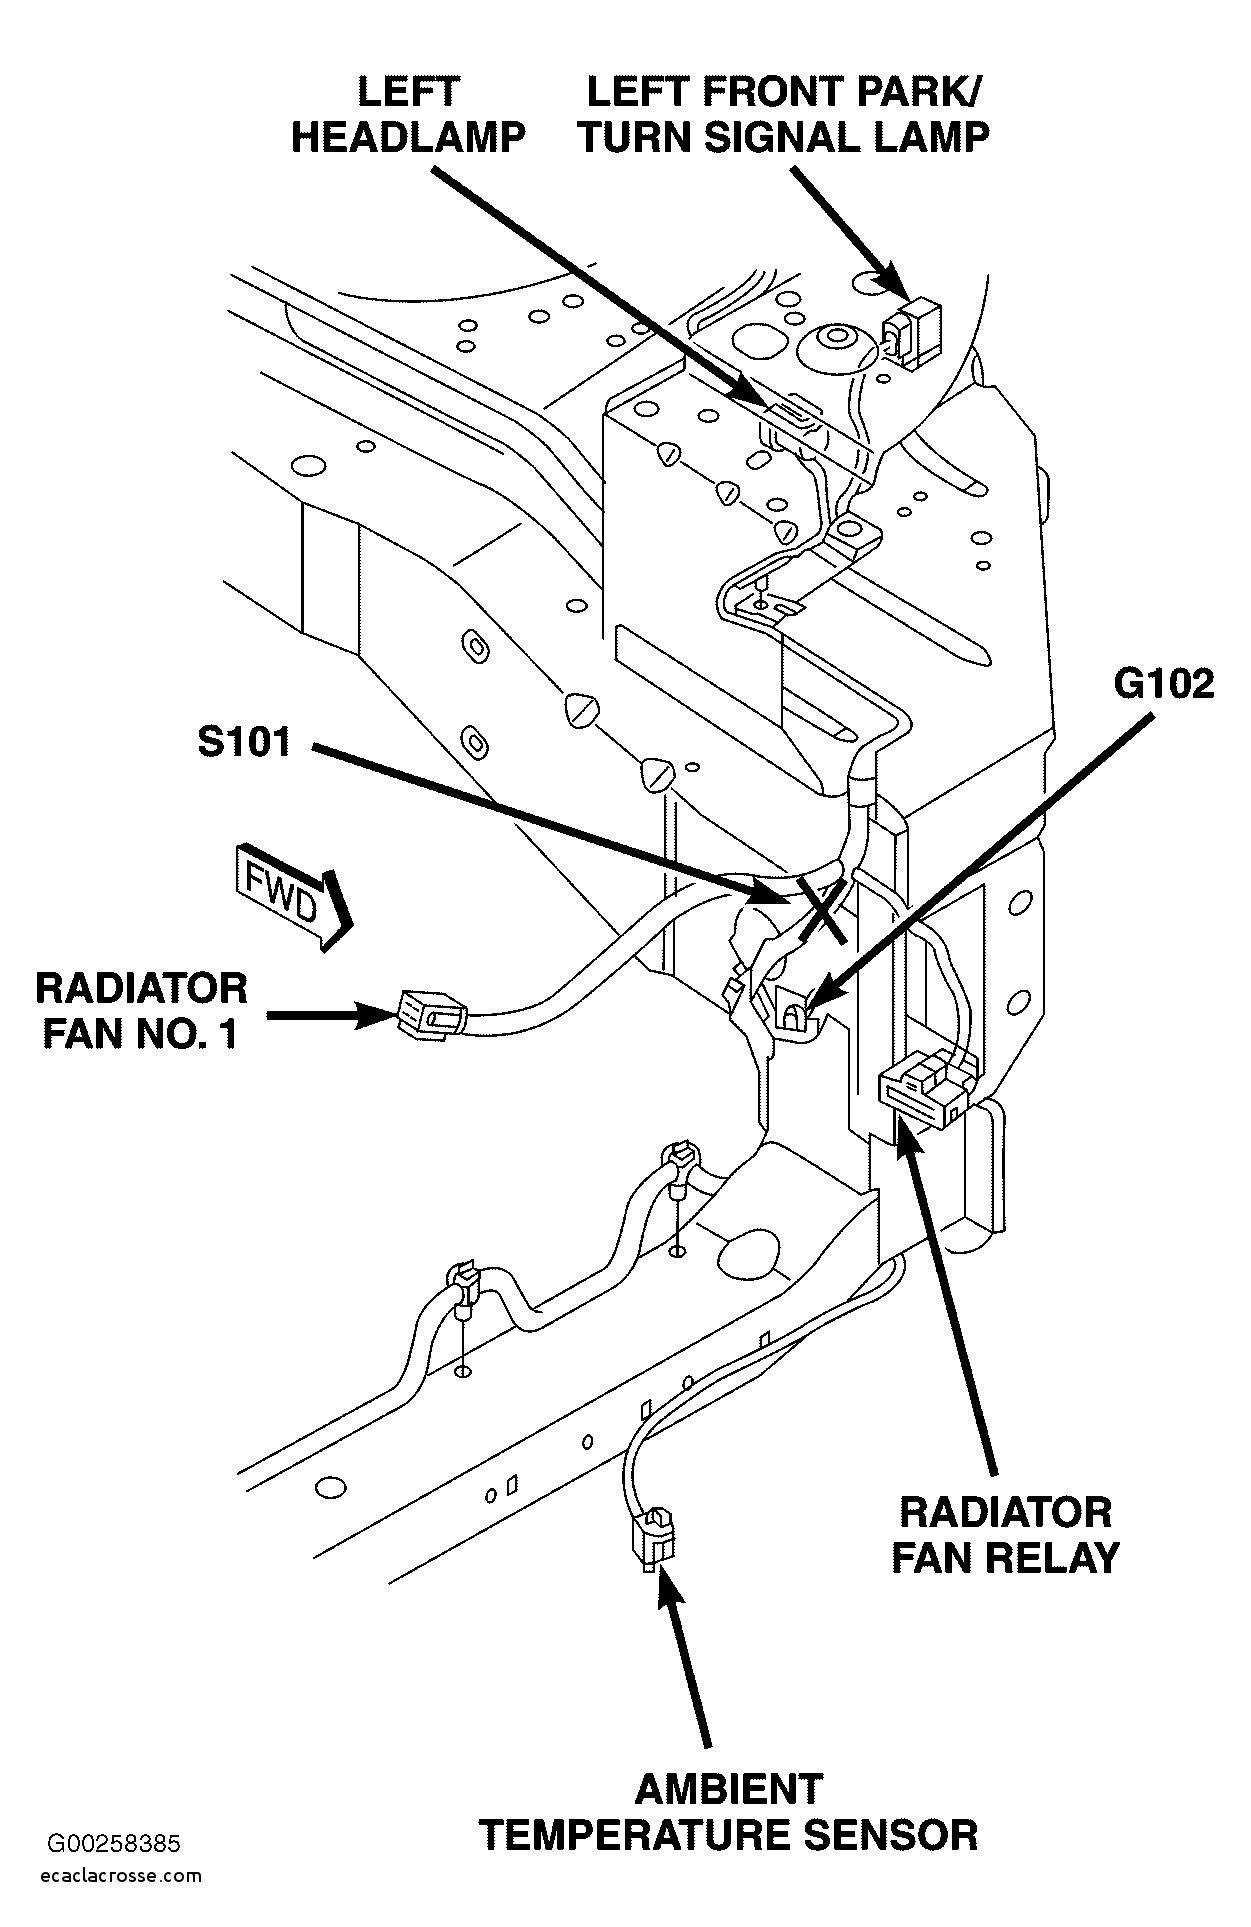 Automotive Wiring Diagram Online